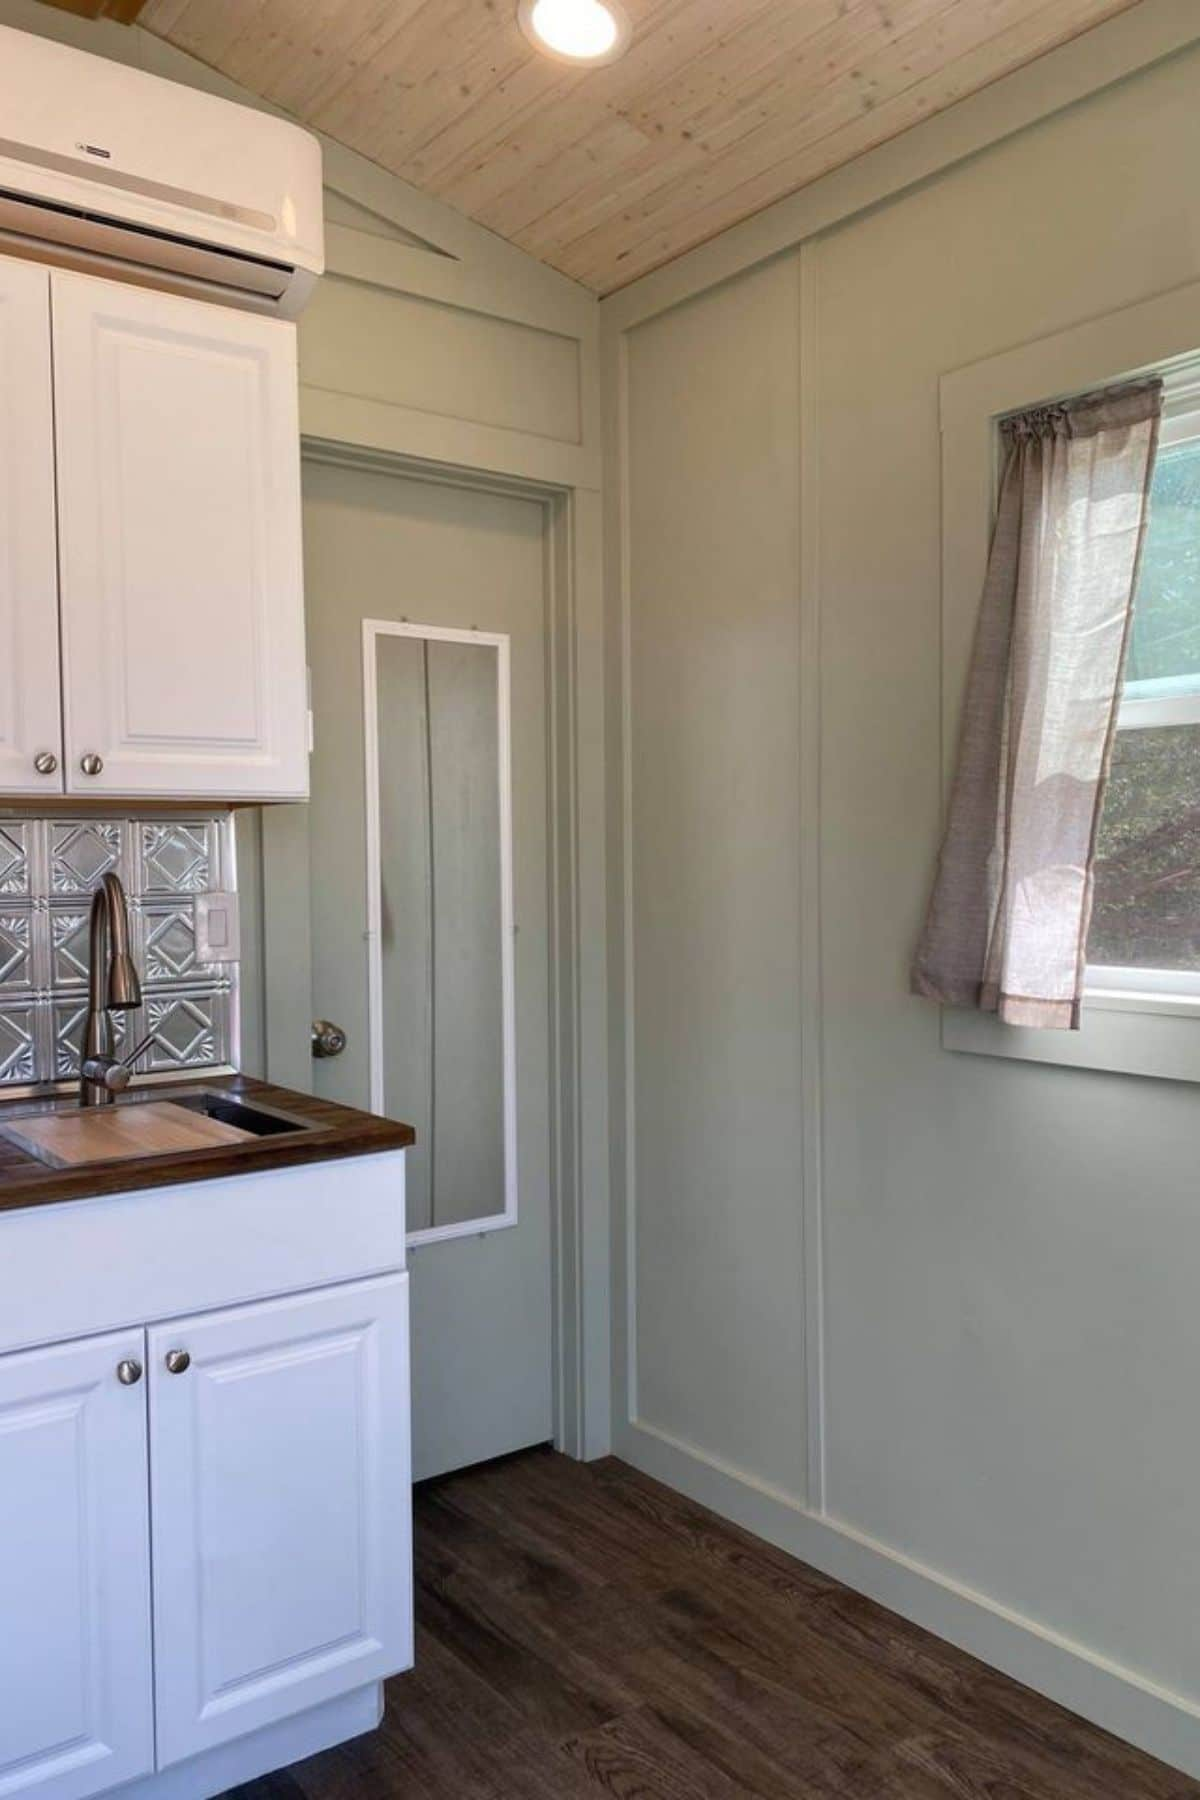 Door next to end of kitchen counter by sink